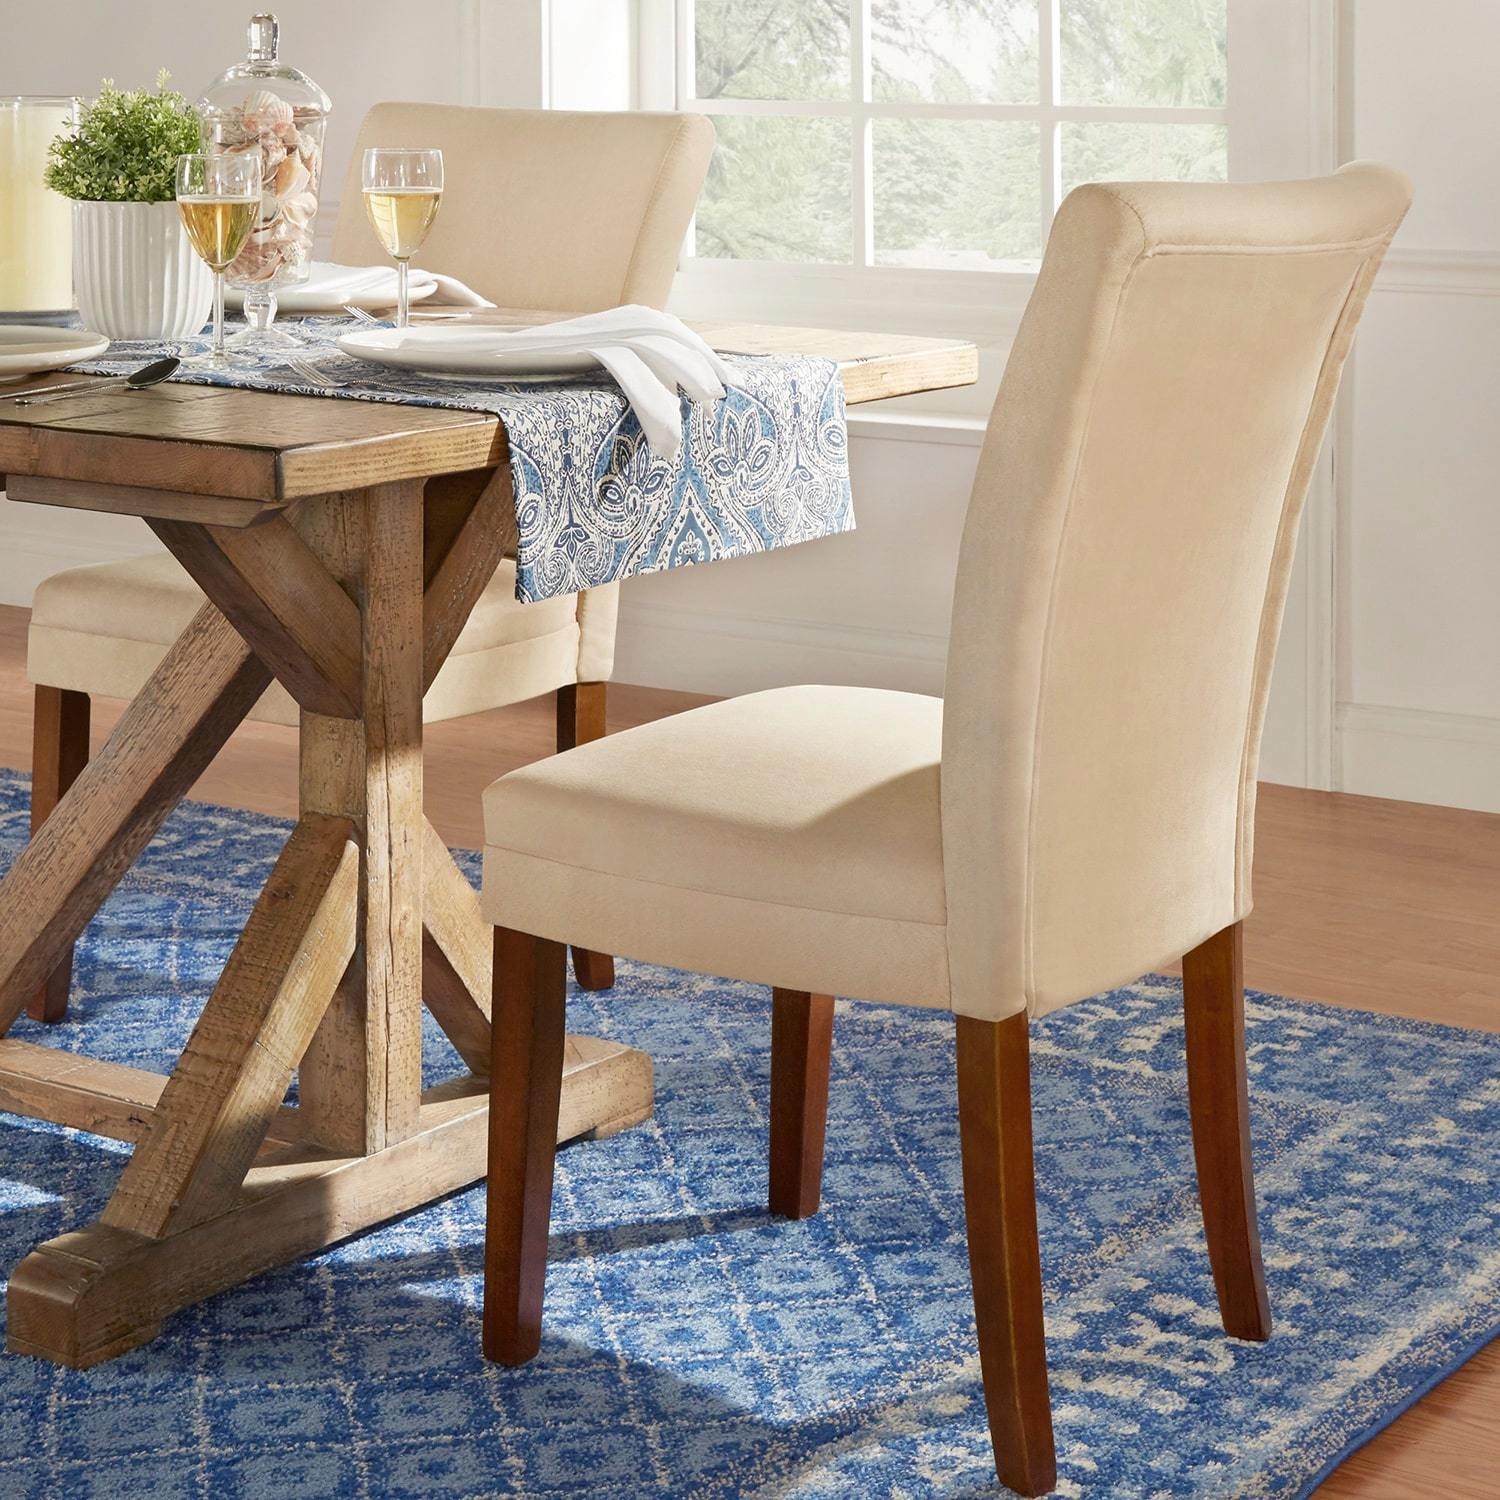 Dining Chair Set Of 2 Parson Classic Upholstered Dining Chair Set Of 2 By Inspire Q Bold